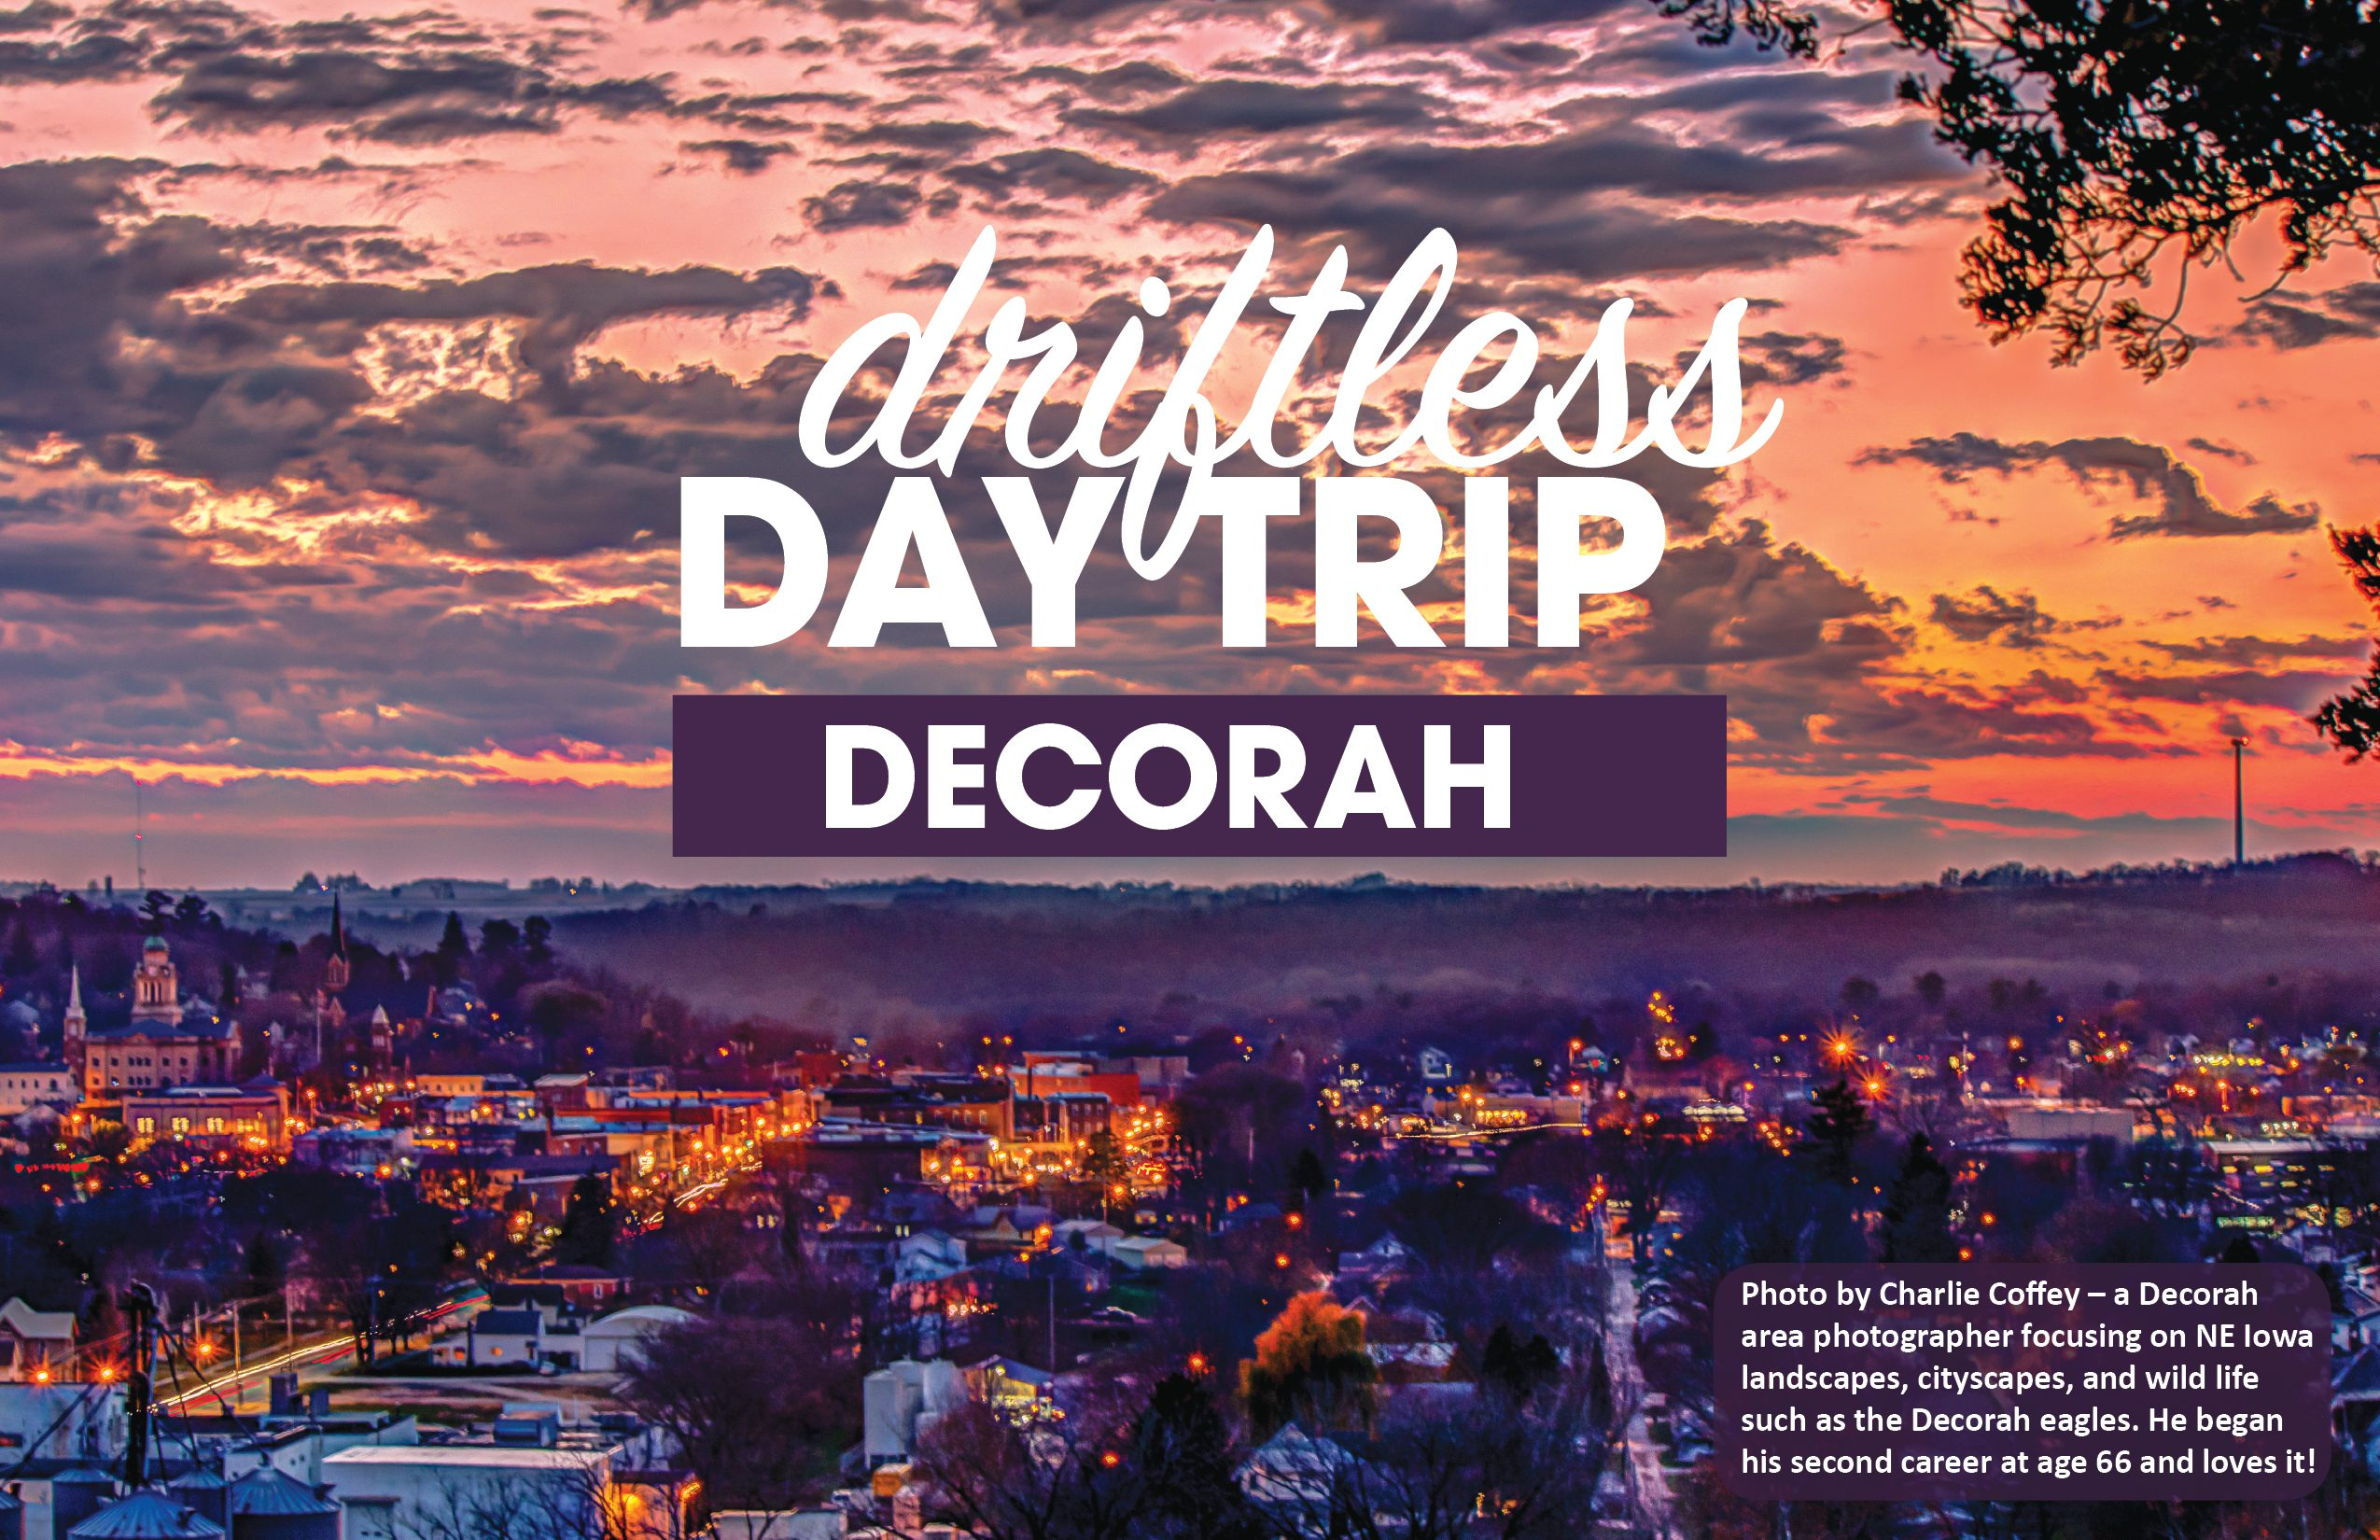 Decorah Driftless Day Trip